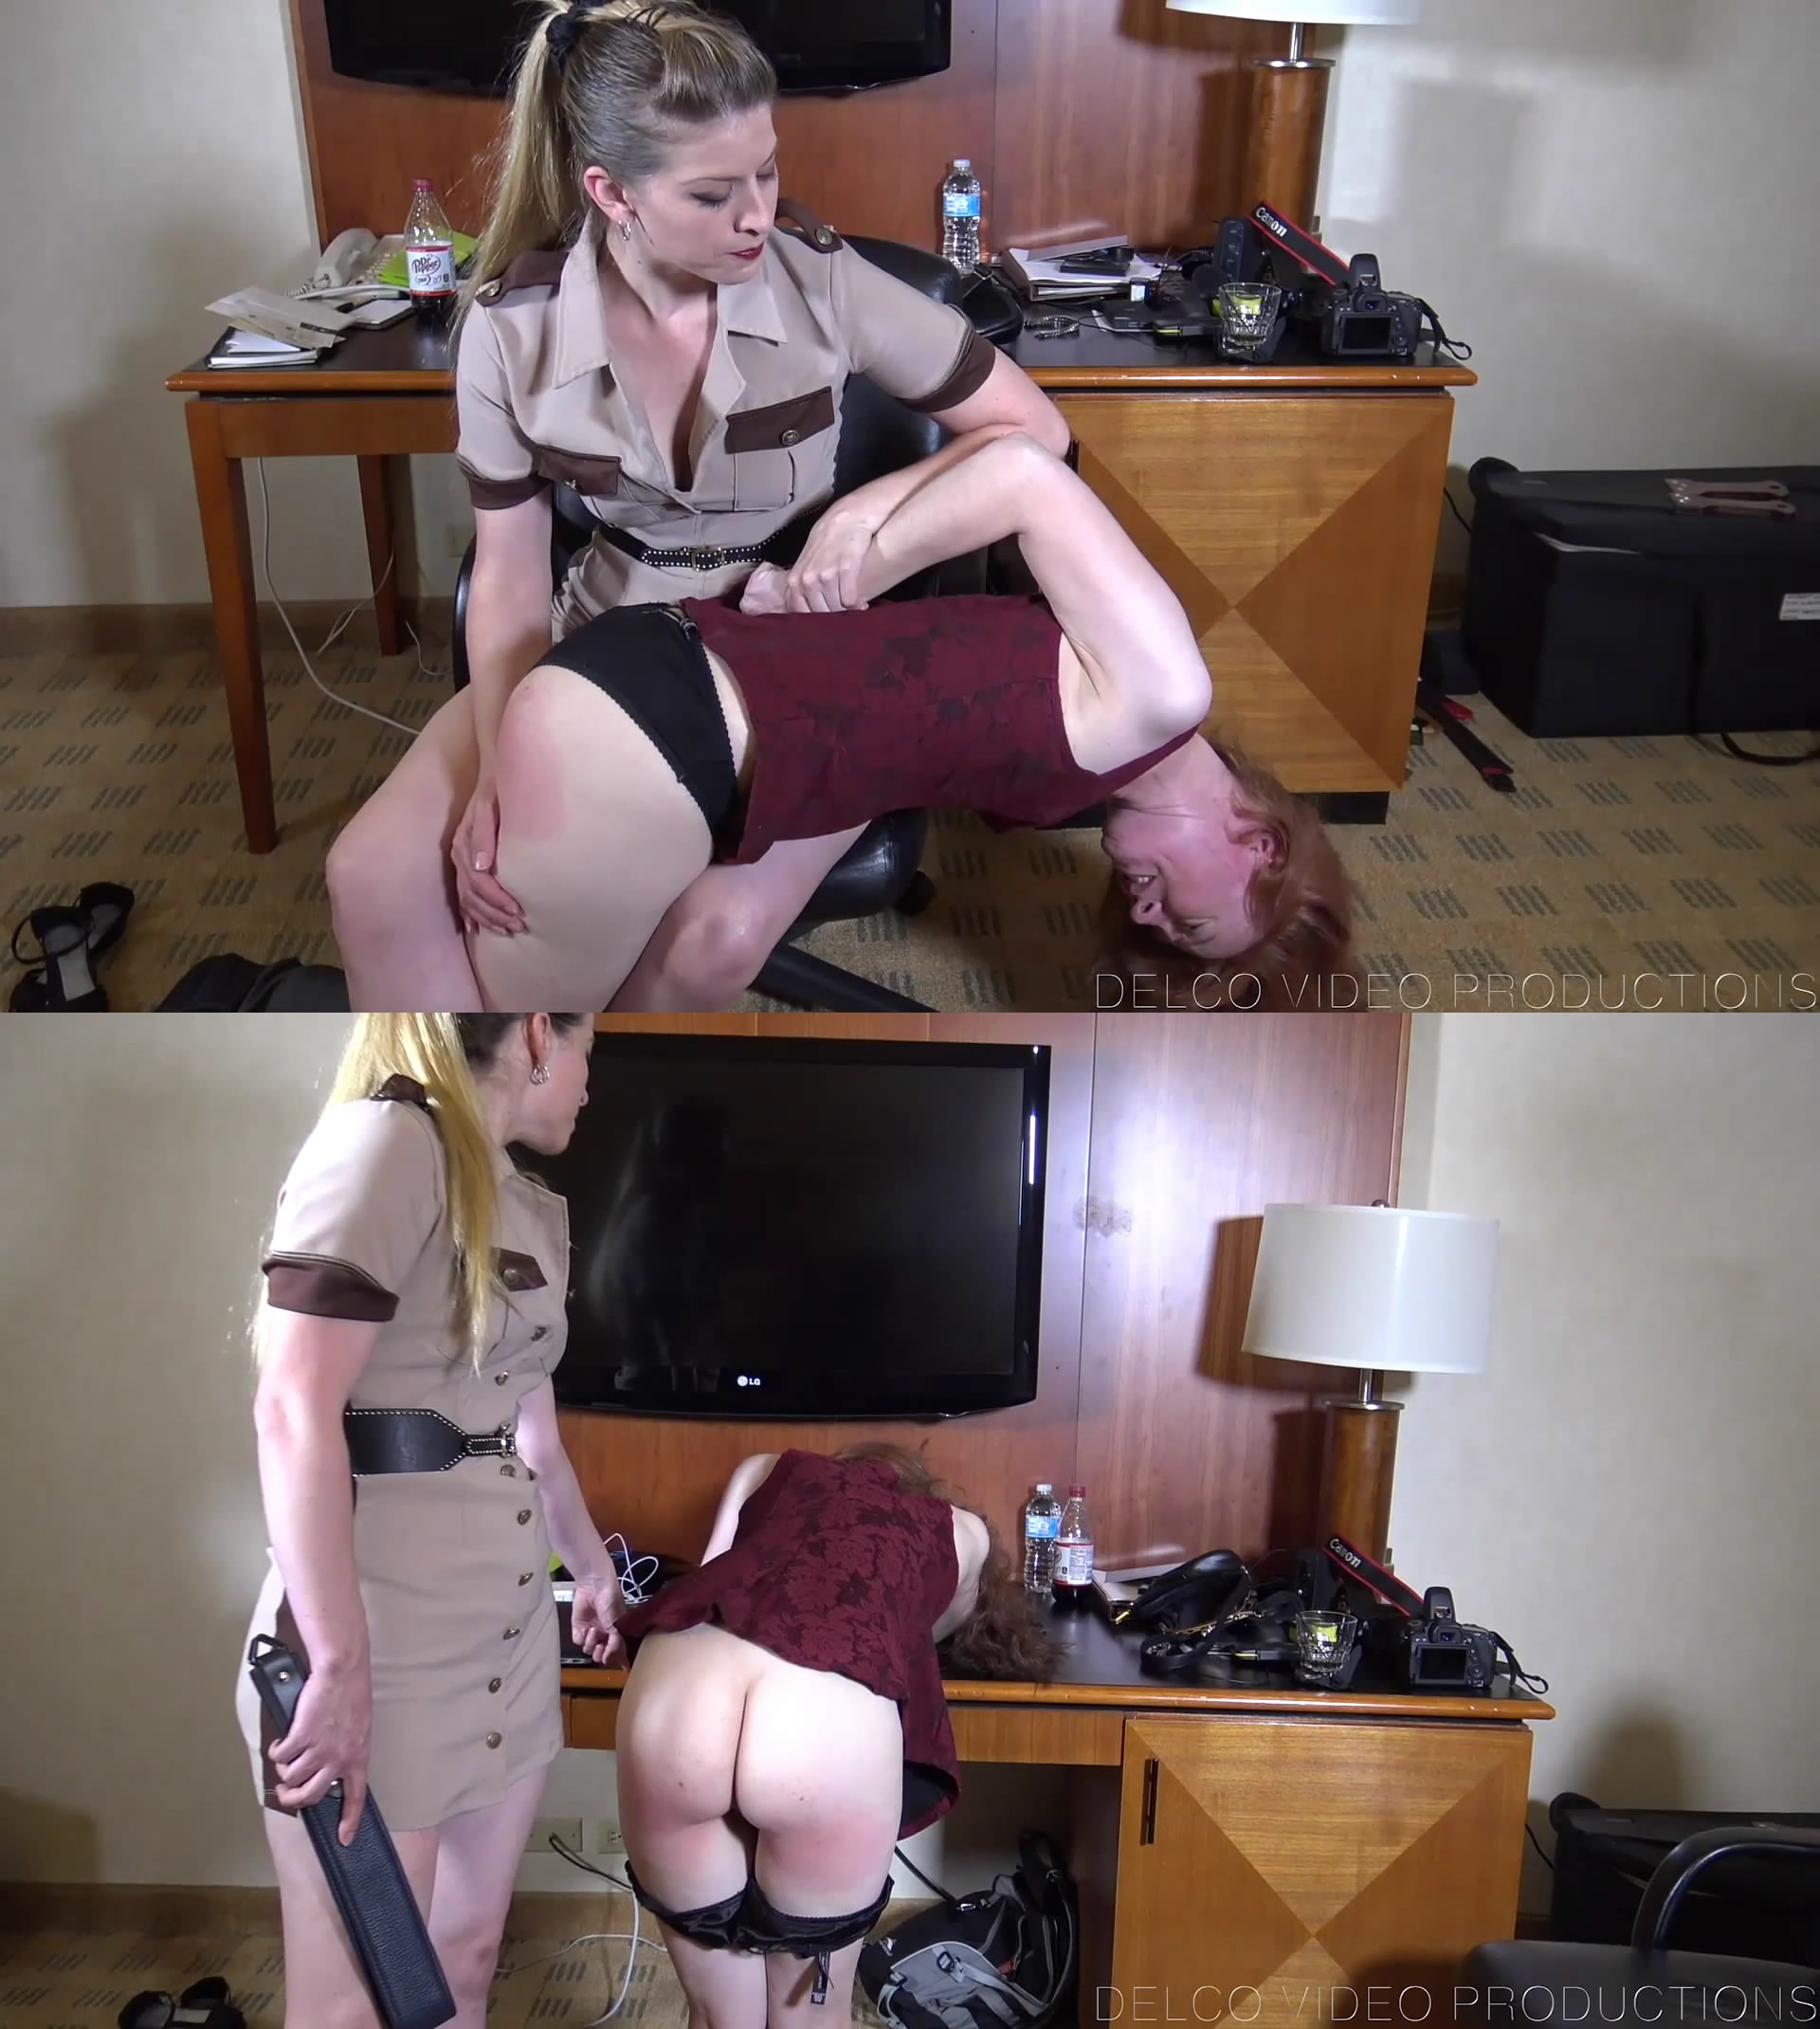 Delco Video Productions – MP4/Full HD – Harley Havik, Melody Nore – Shoplifter's Sanction